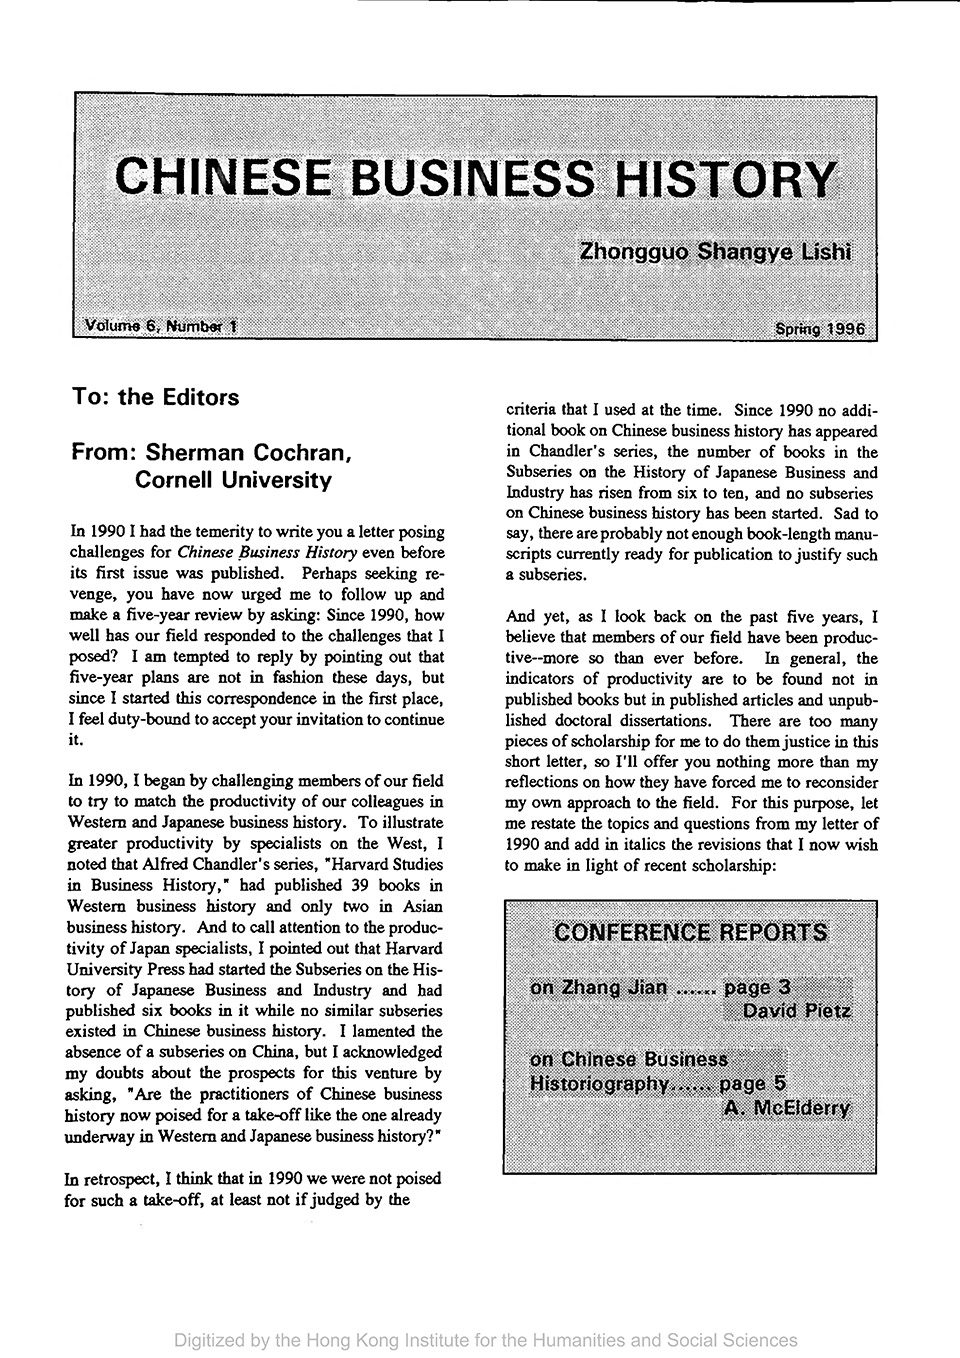 Cover of Chinese Business History Journal Volume 6, Number 1